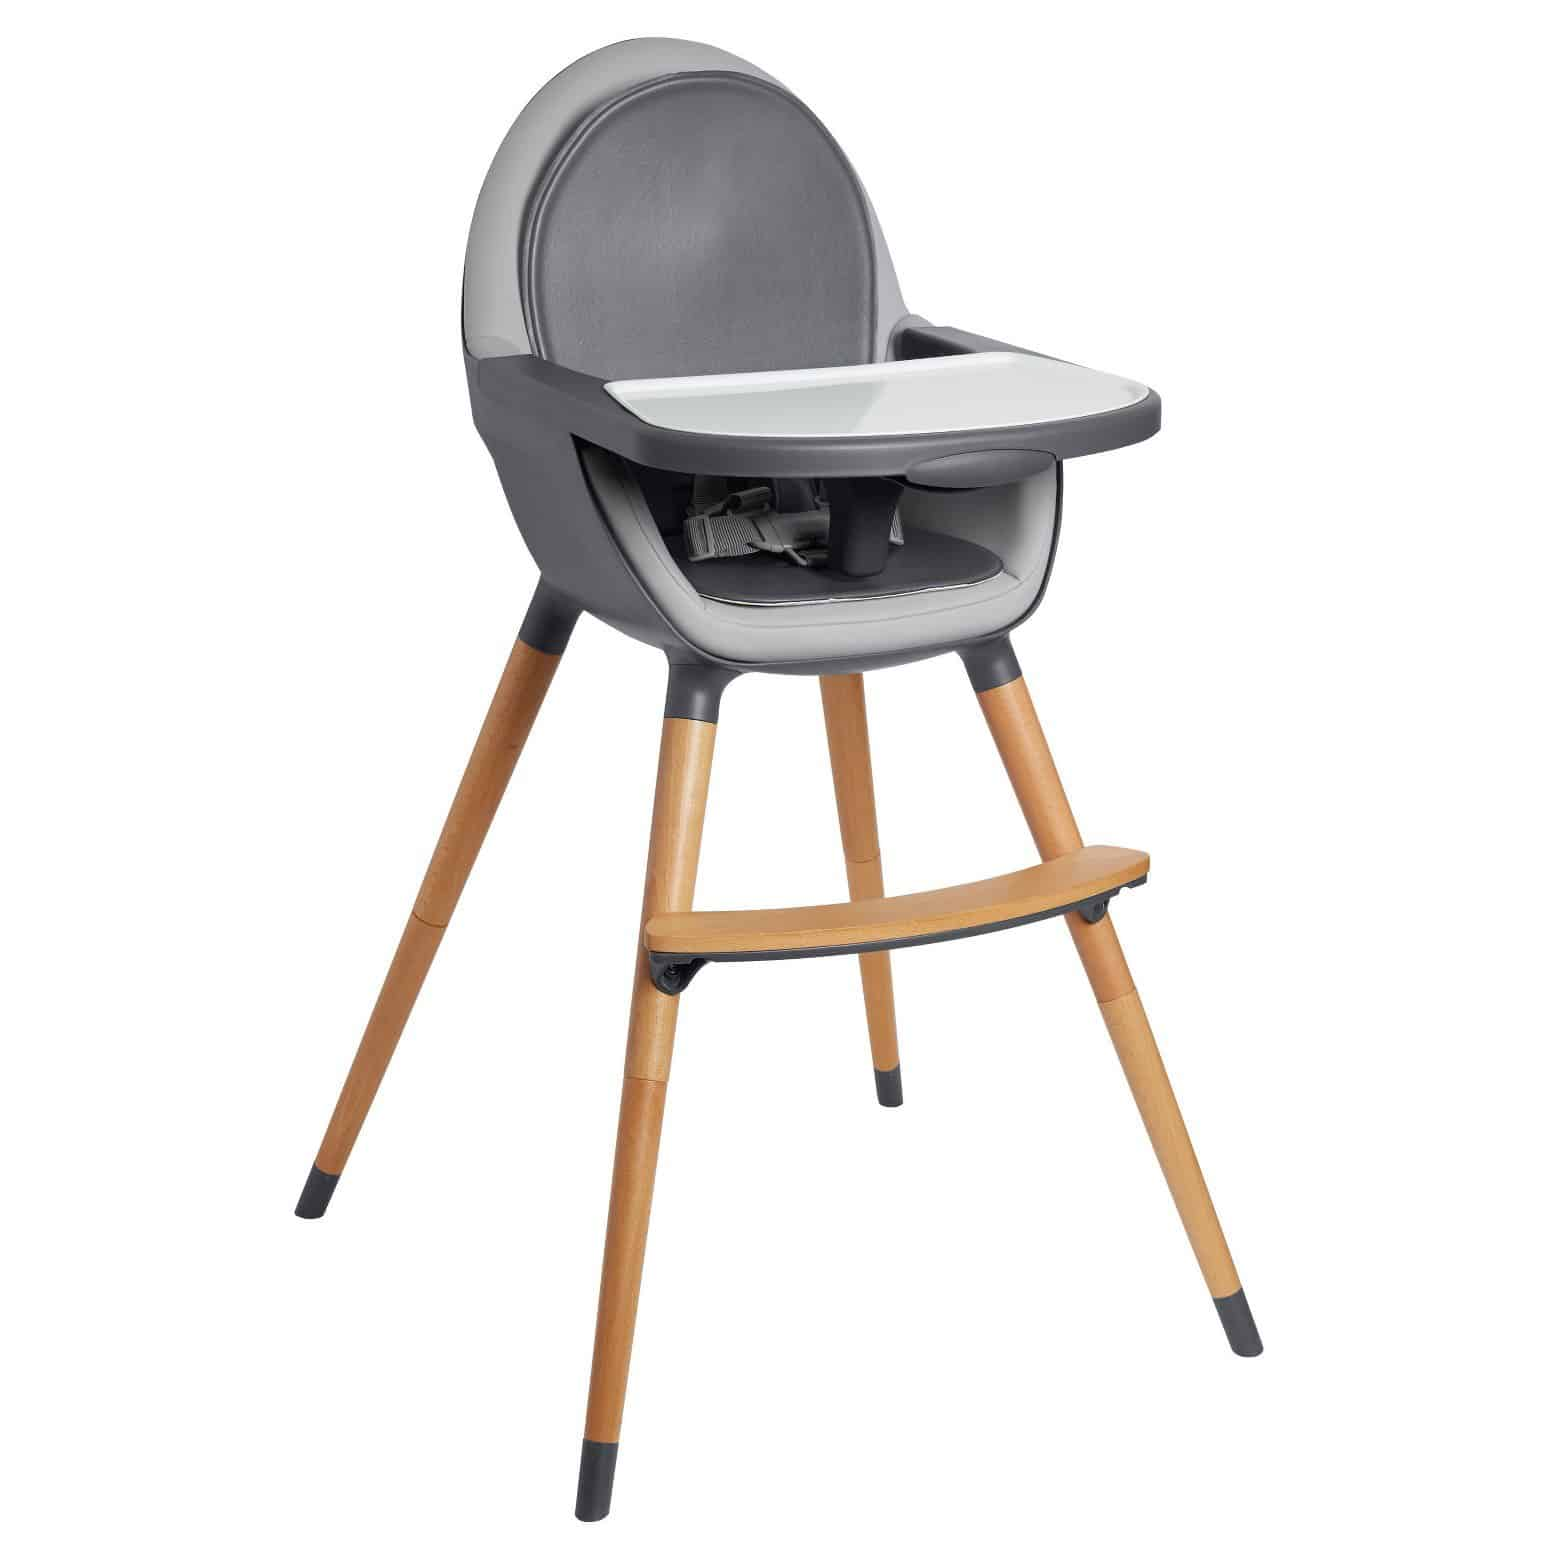 Minimalist Mom Baby Essentials Baby Checklist High Chair Skip Hop